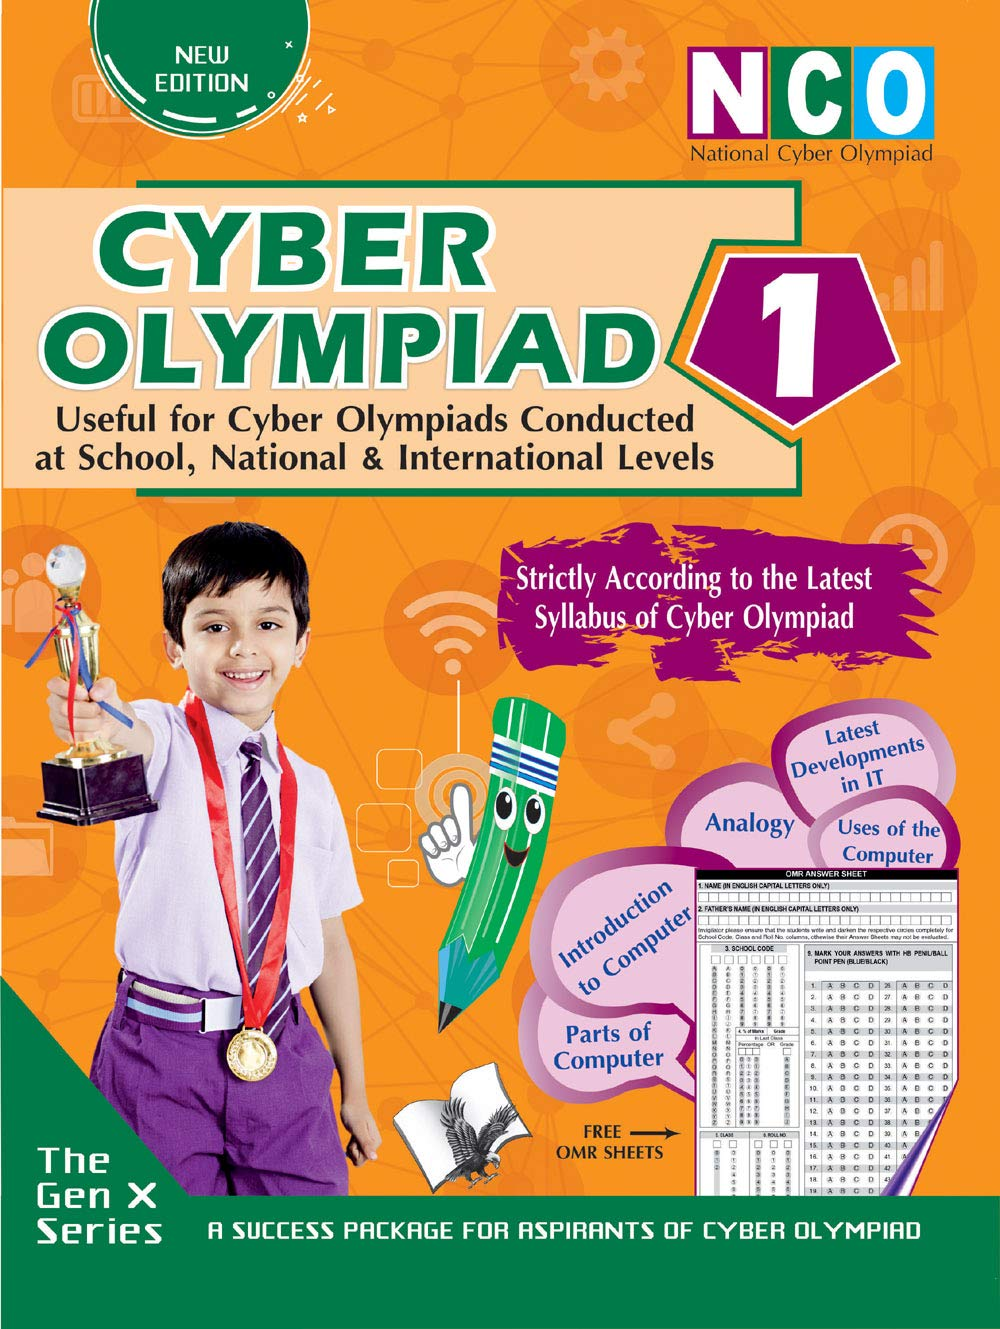 CYBER OLYMPIAD 1 (USEFUL FOR CYBER OLYMPIADS CONDUCTED AT SCHOOL, NATIONAL & INTERNATIONAL LEVELS)